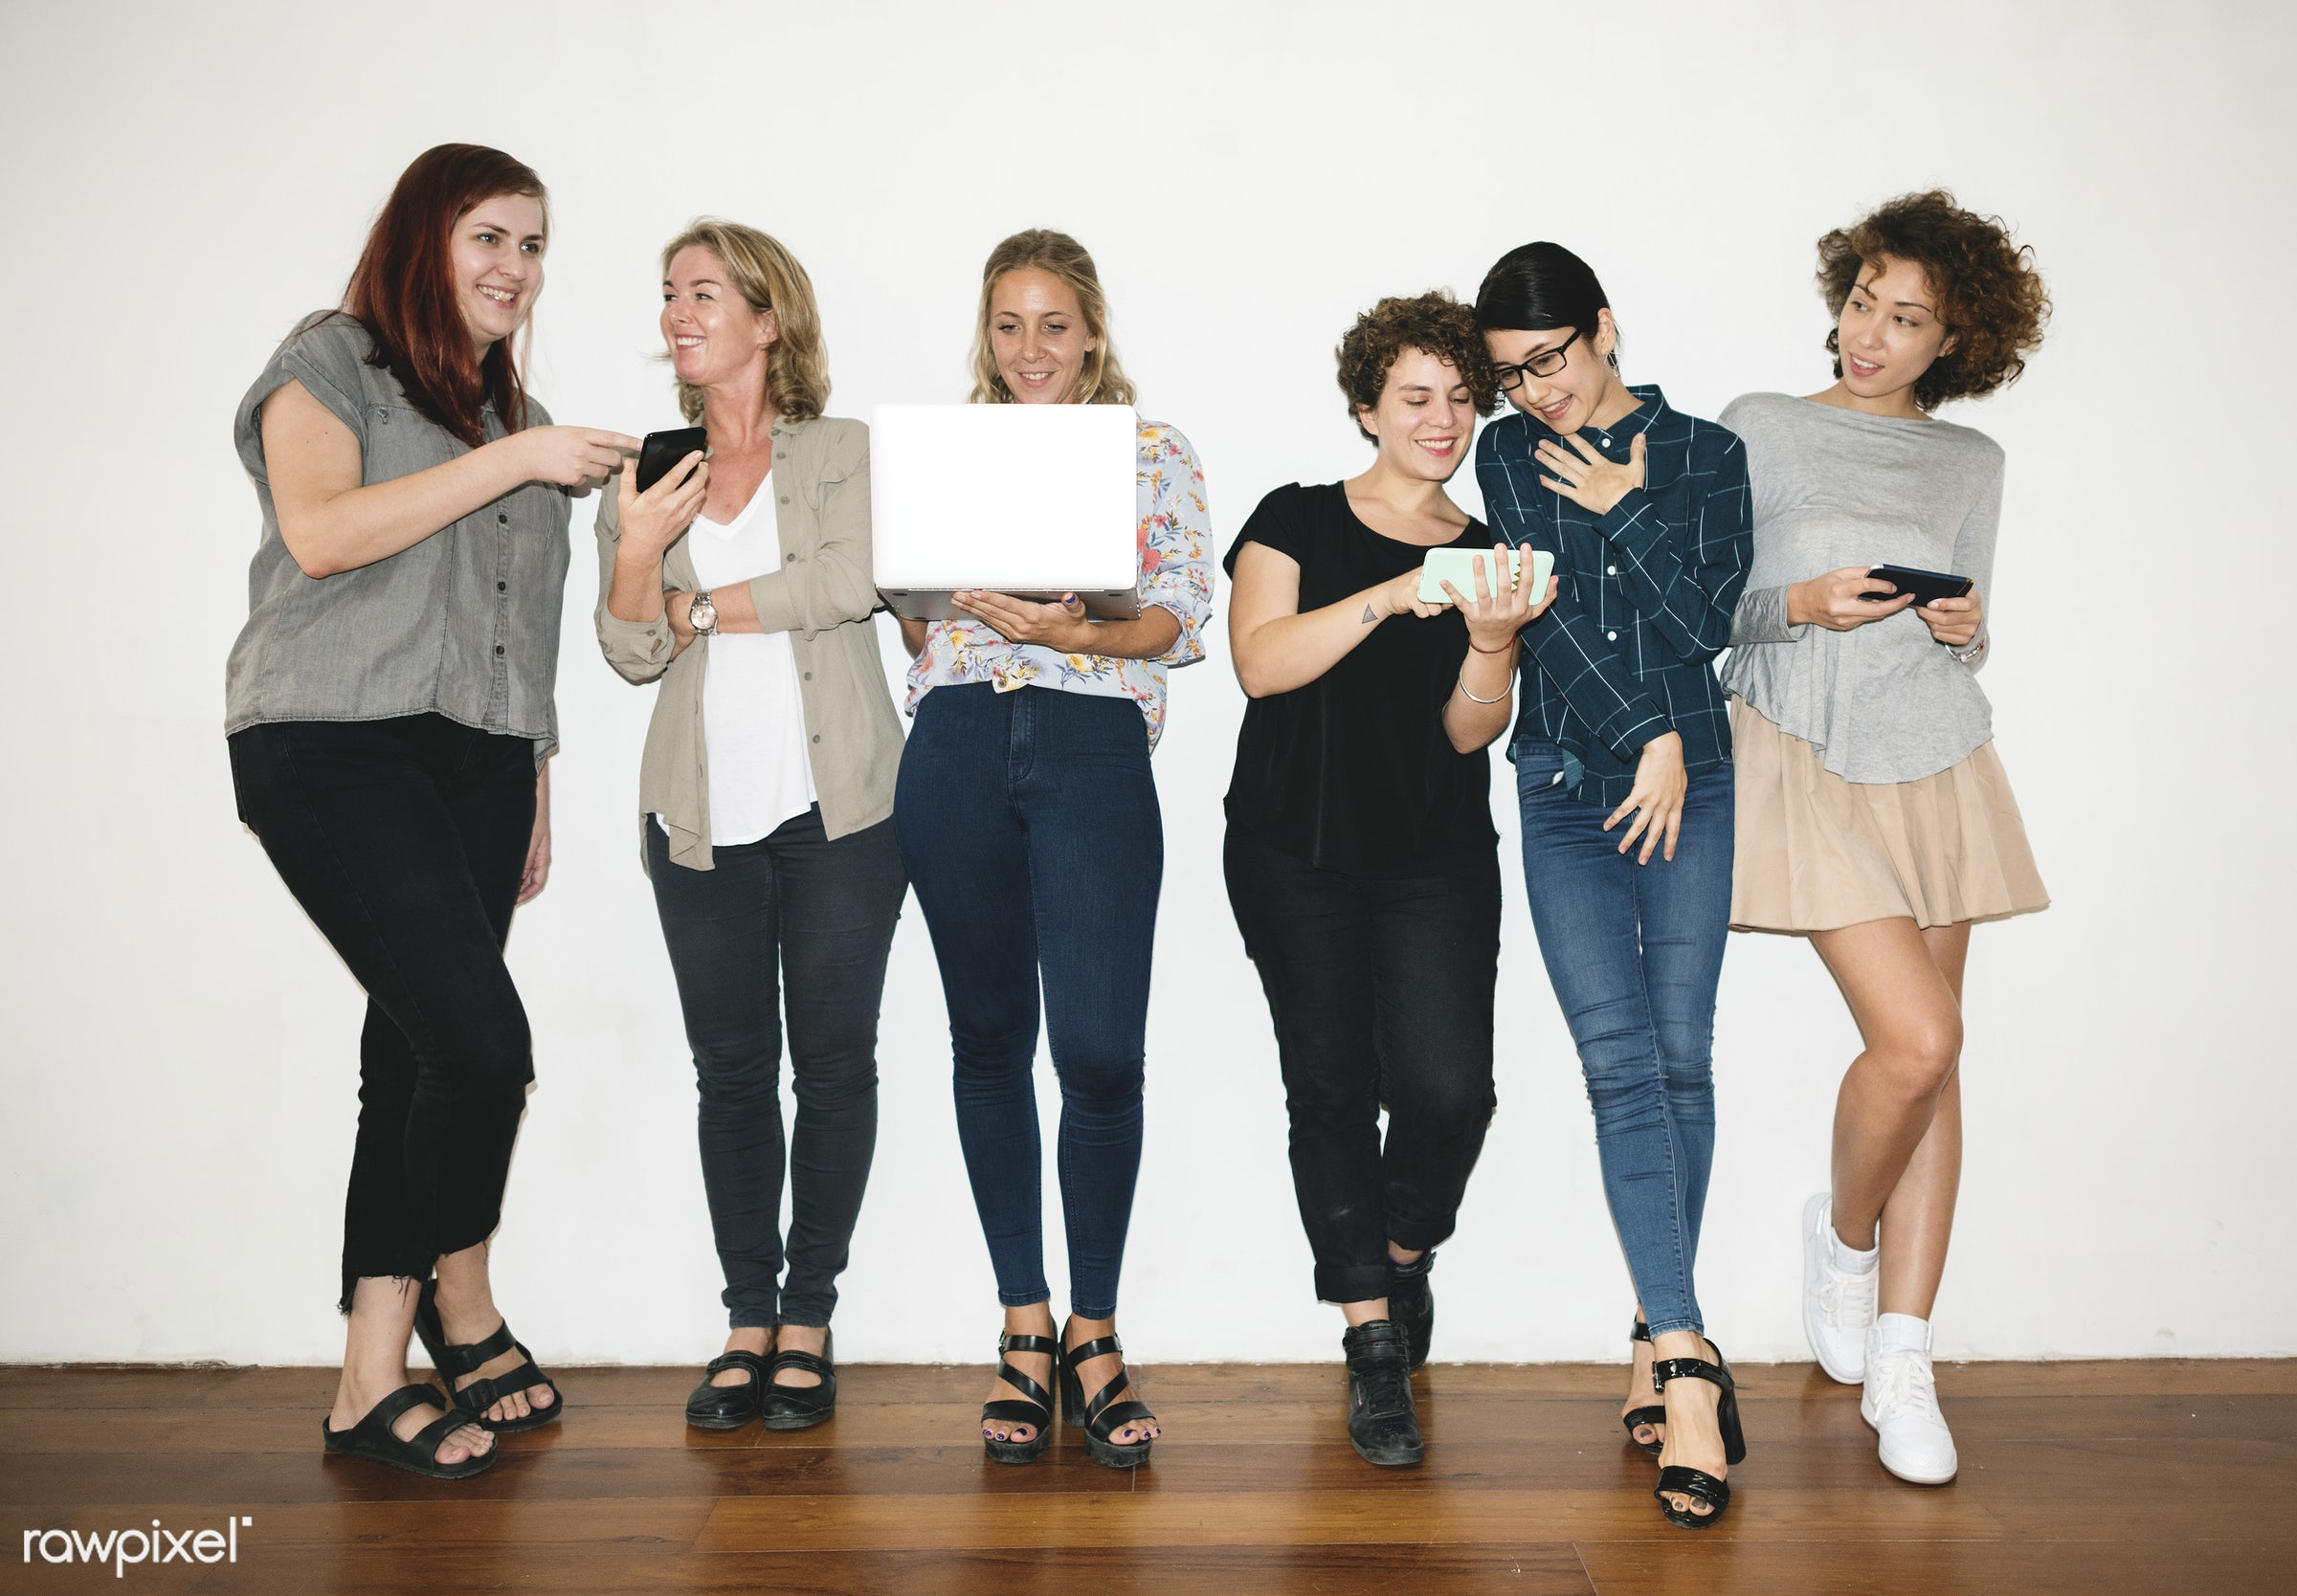 A cheerful fashion designers team - adult, casual clothing, diverse, fashion, friends, laptop, man, mobile, posing for...